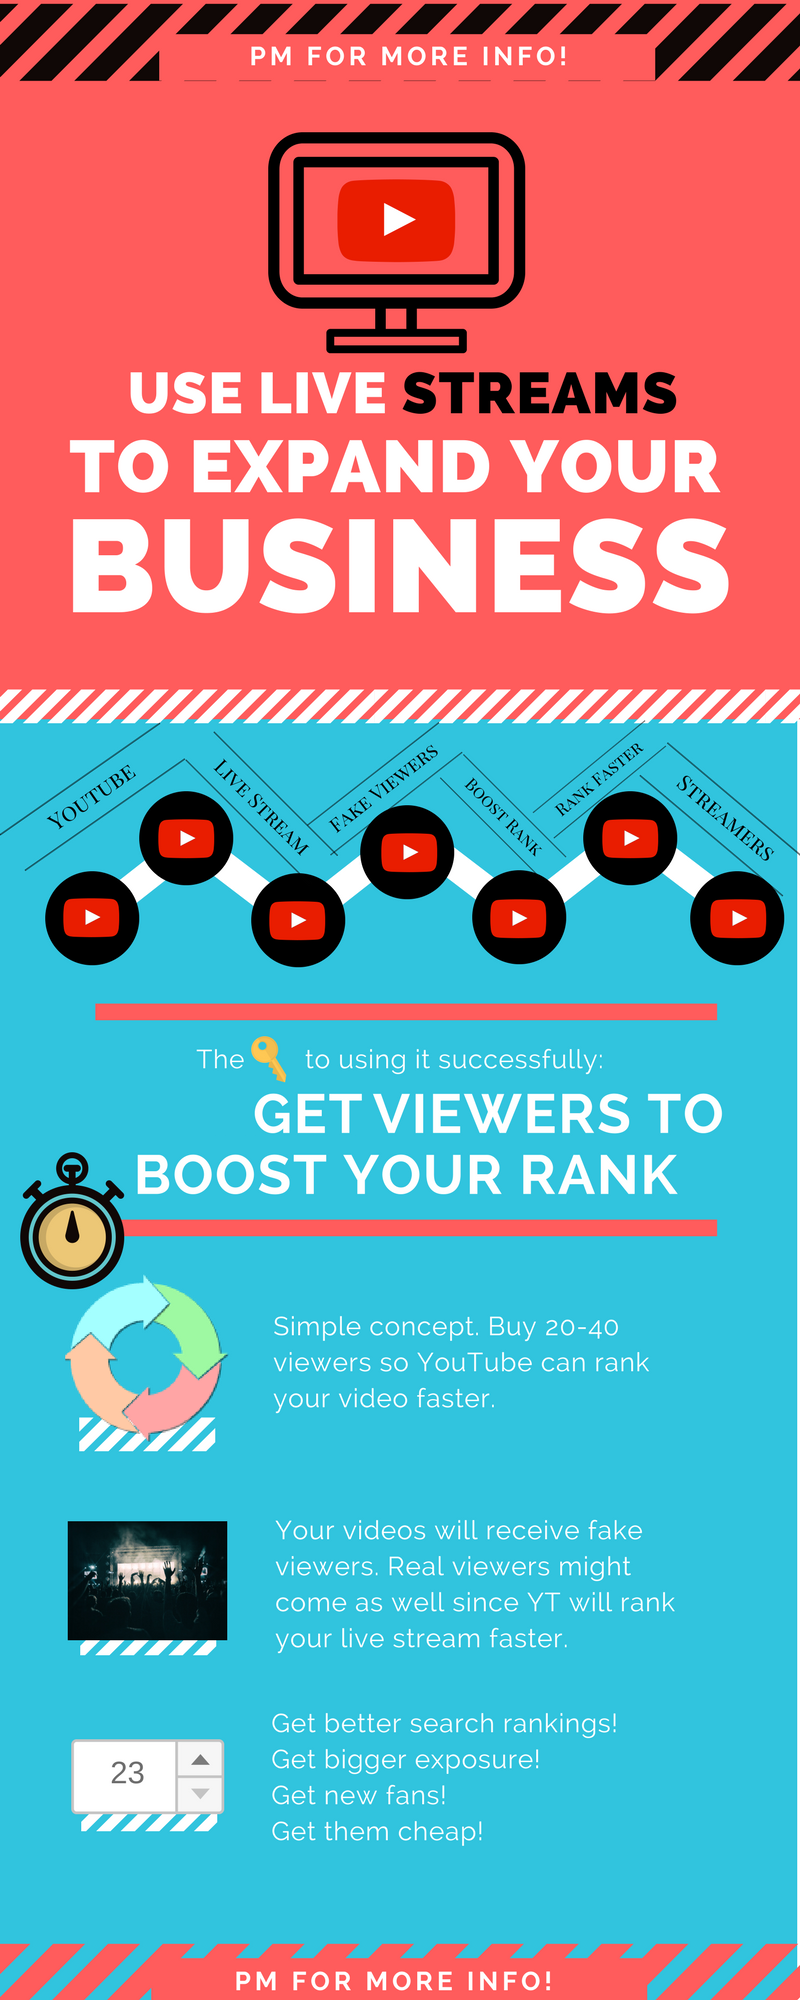 Selling YouTube Live Stream Viewers Rank Your YT Live Stream